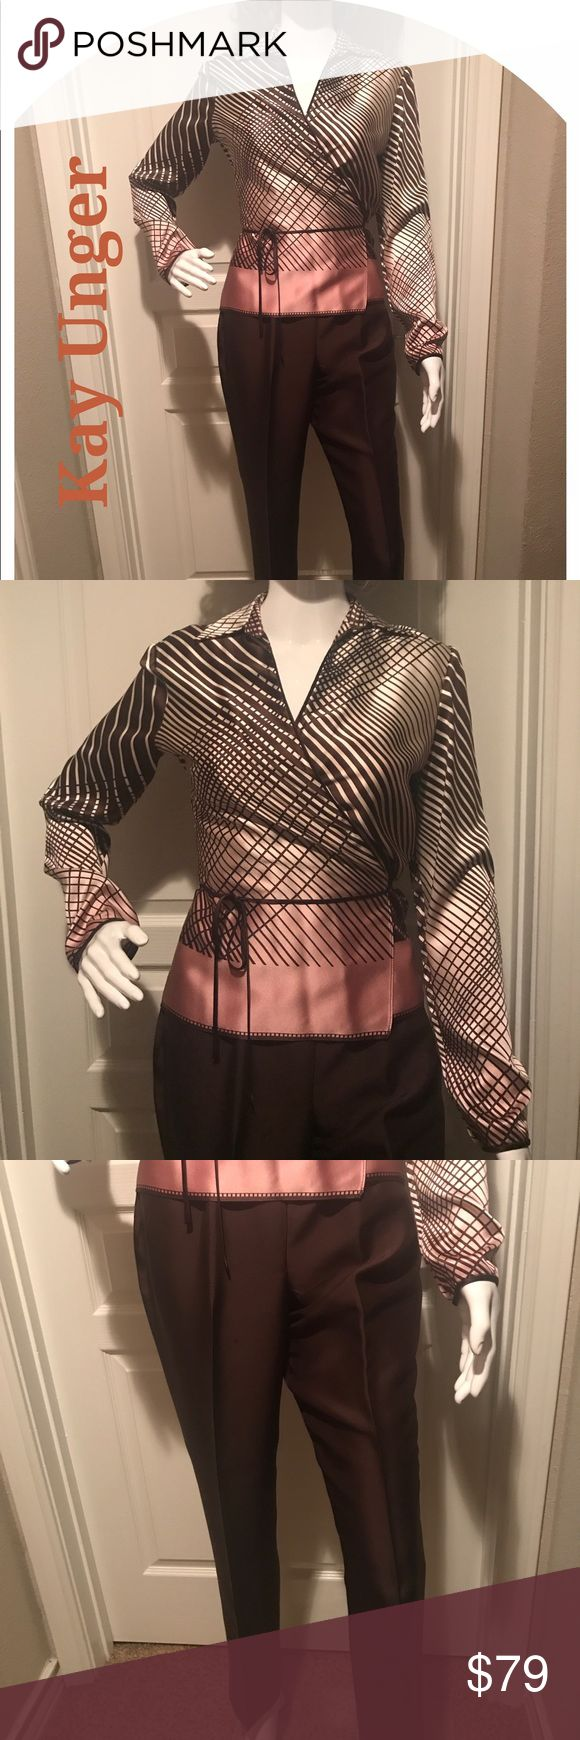 Kay Unger separates Silk Wrap Size 4, Pants Size 2 Kay Unger separates Silk Wrap Size 4, Pants Size 2 will sell separately or as a set just make an offer Kay Unger Other